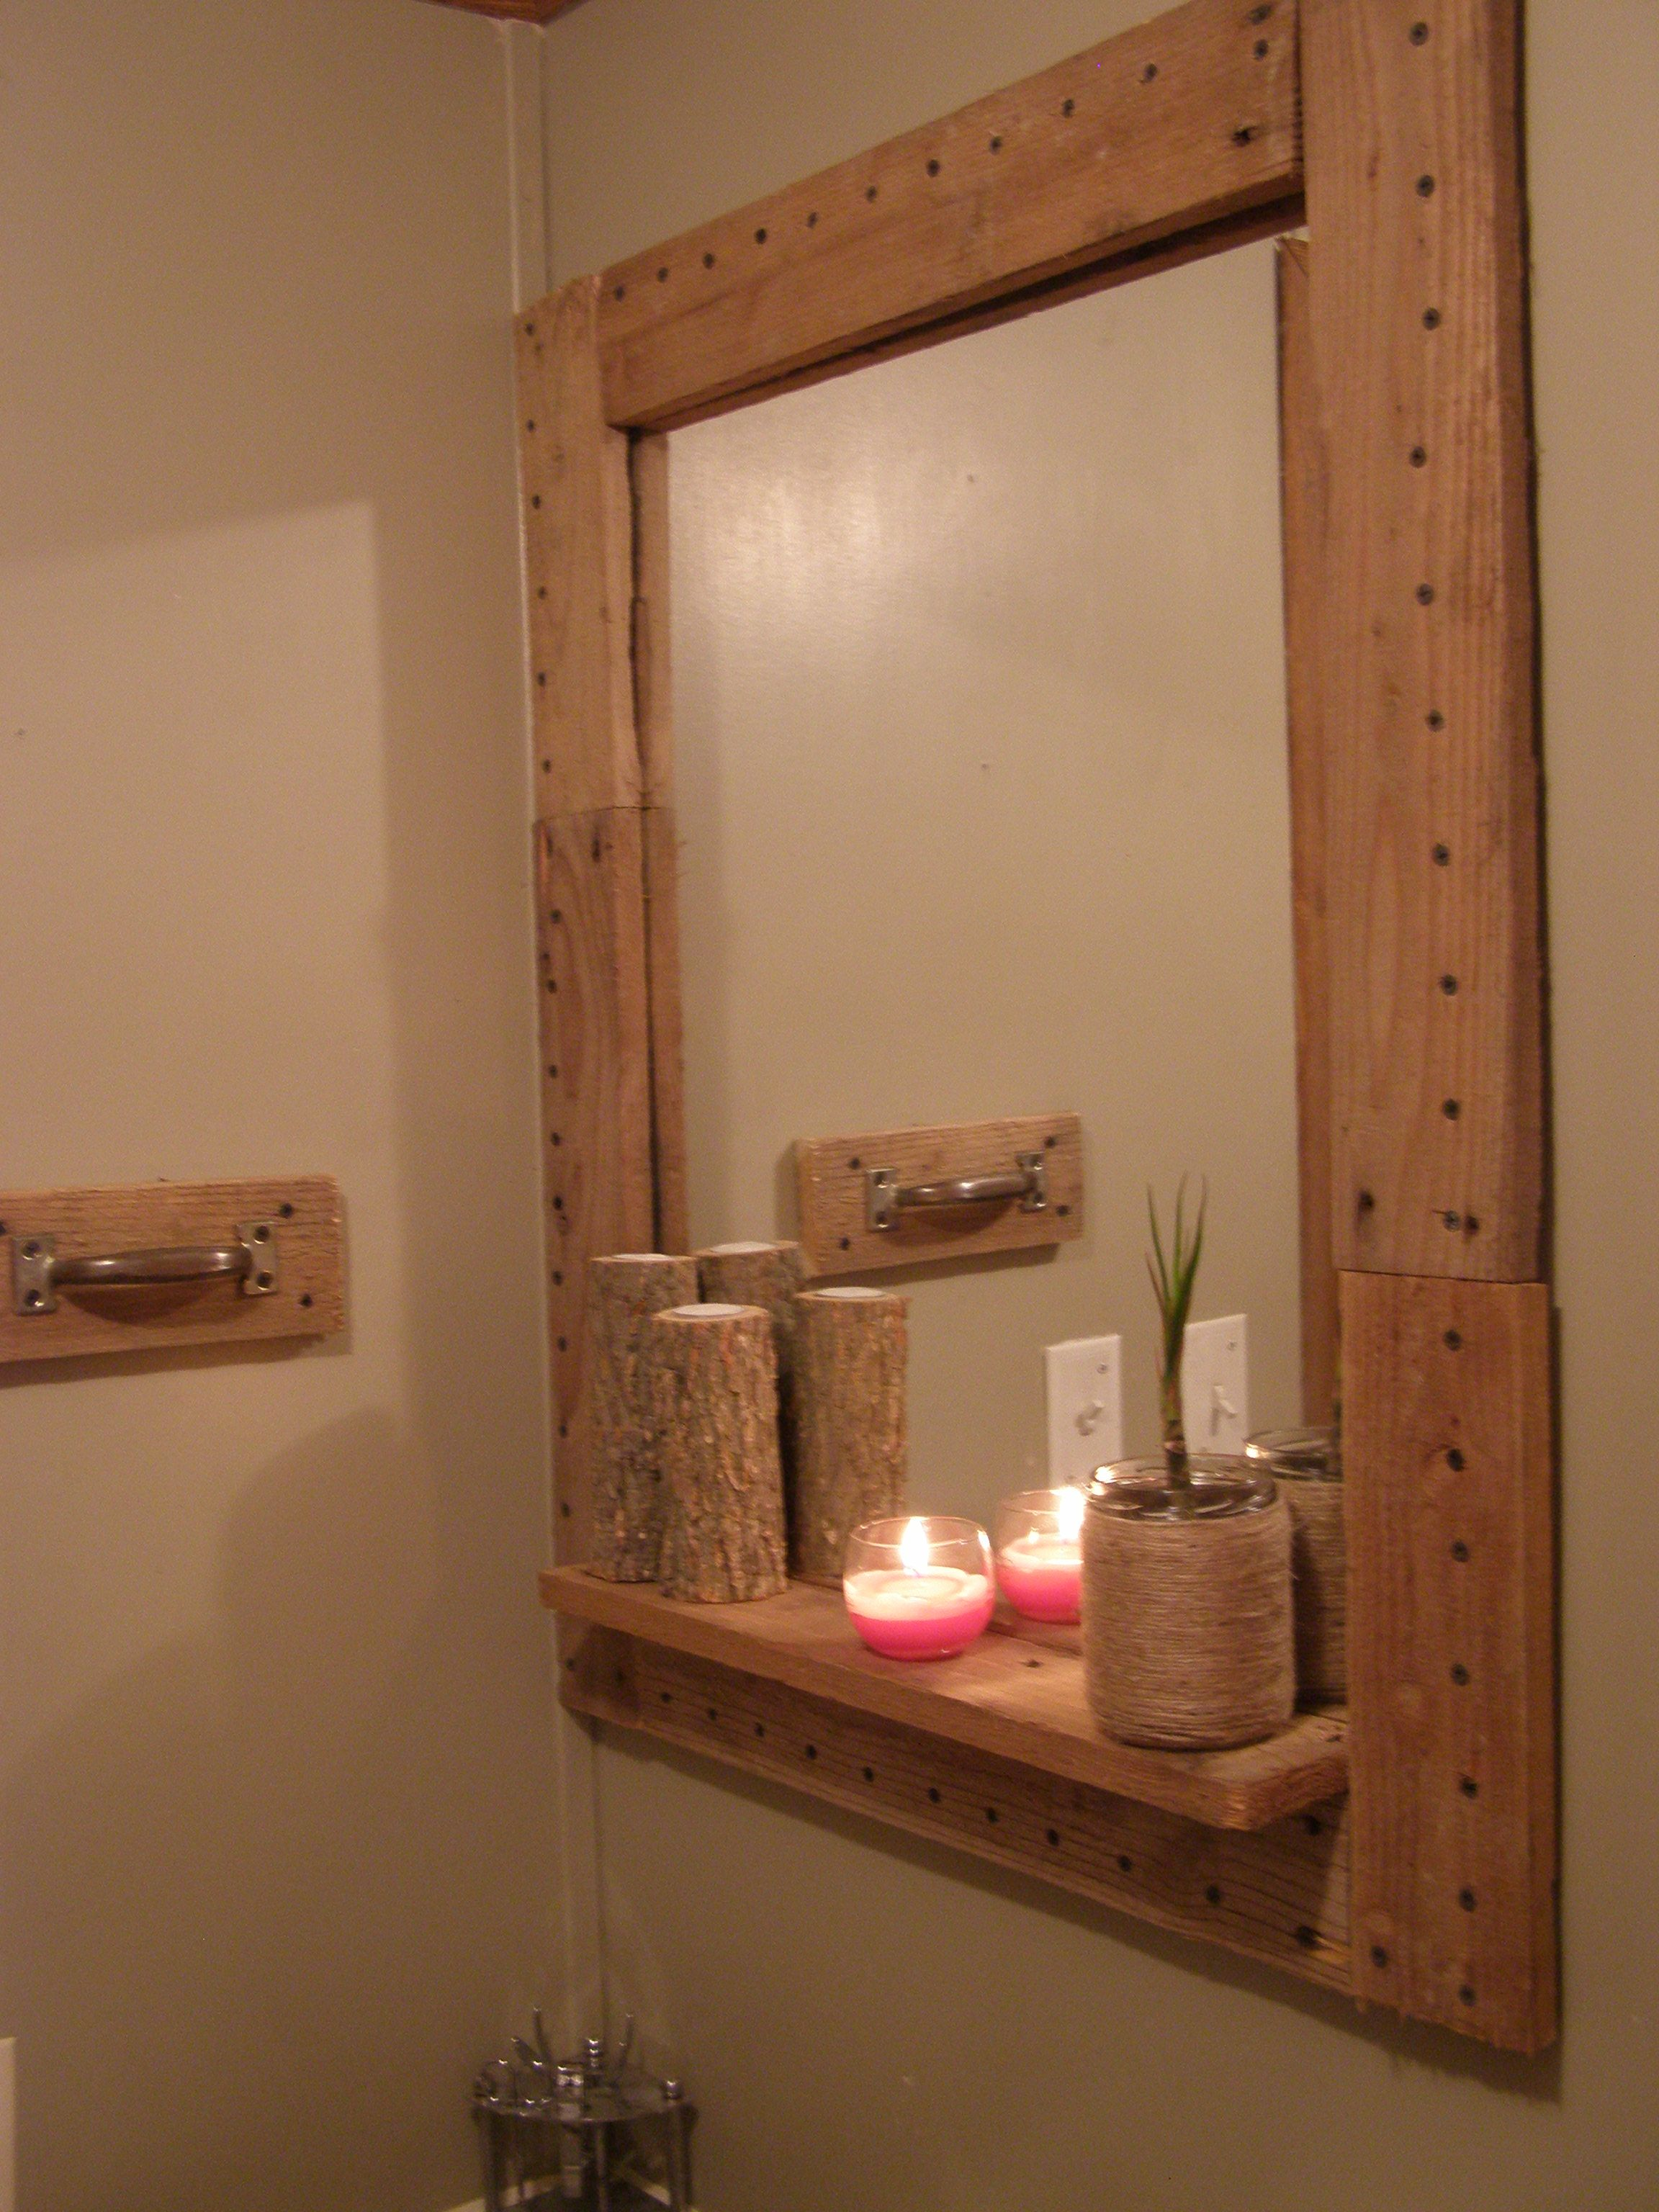 Wood Frame Mirror For Bathroom Framed My Bathroom Mirror With Pallets The Towel Hanger